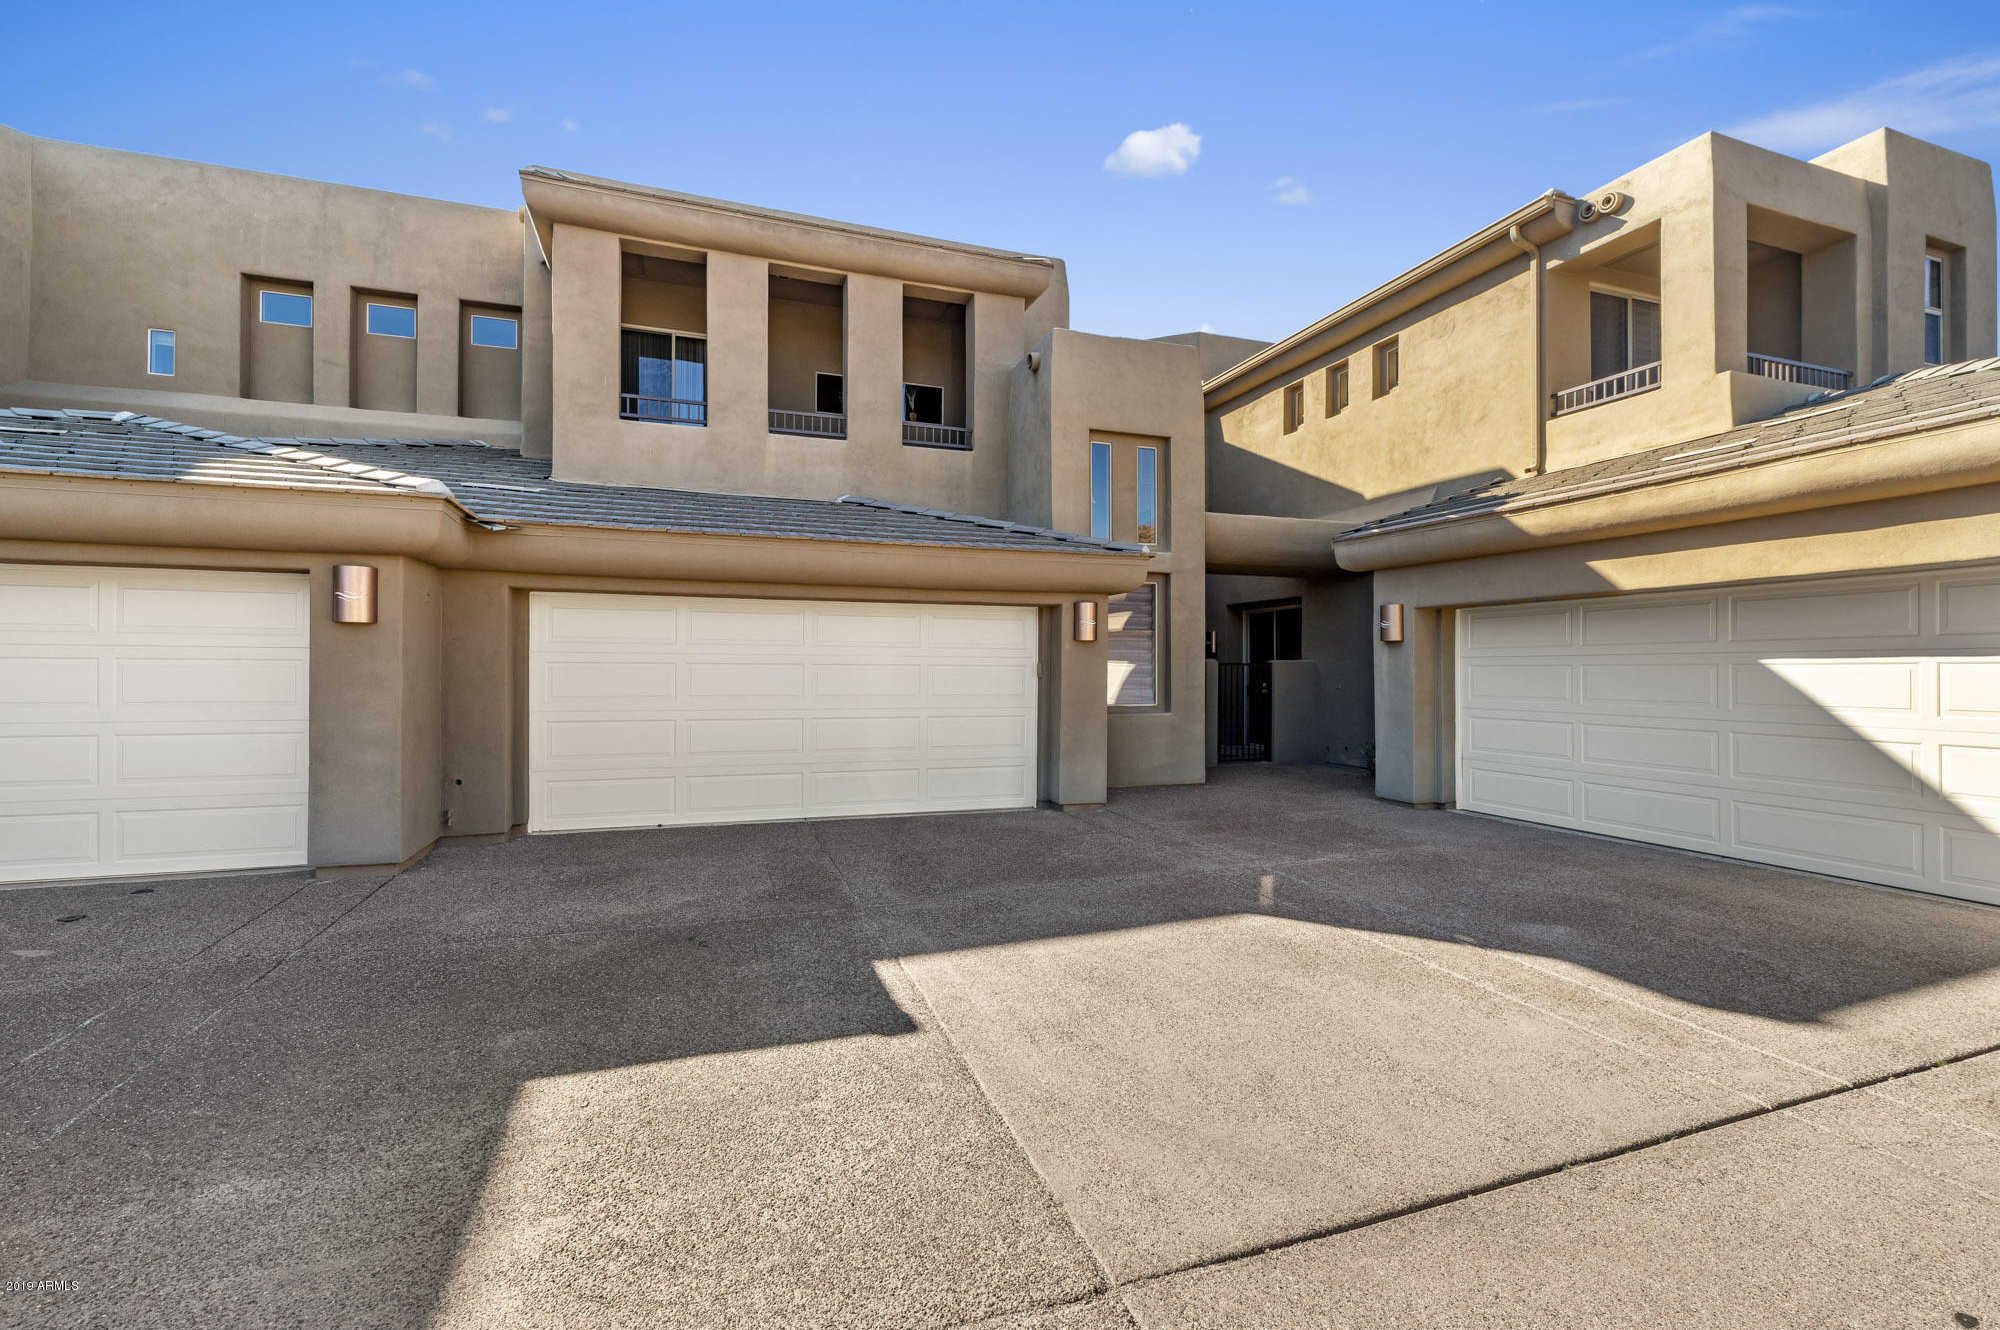 $690,000 - 3Br/3Ba -  for Sale in Villas At Copperwynd, Fountain Hills